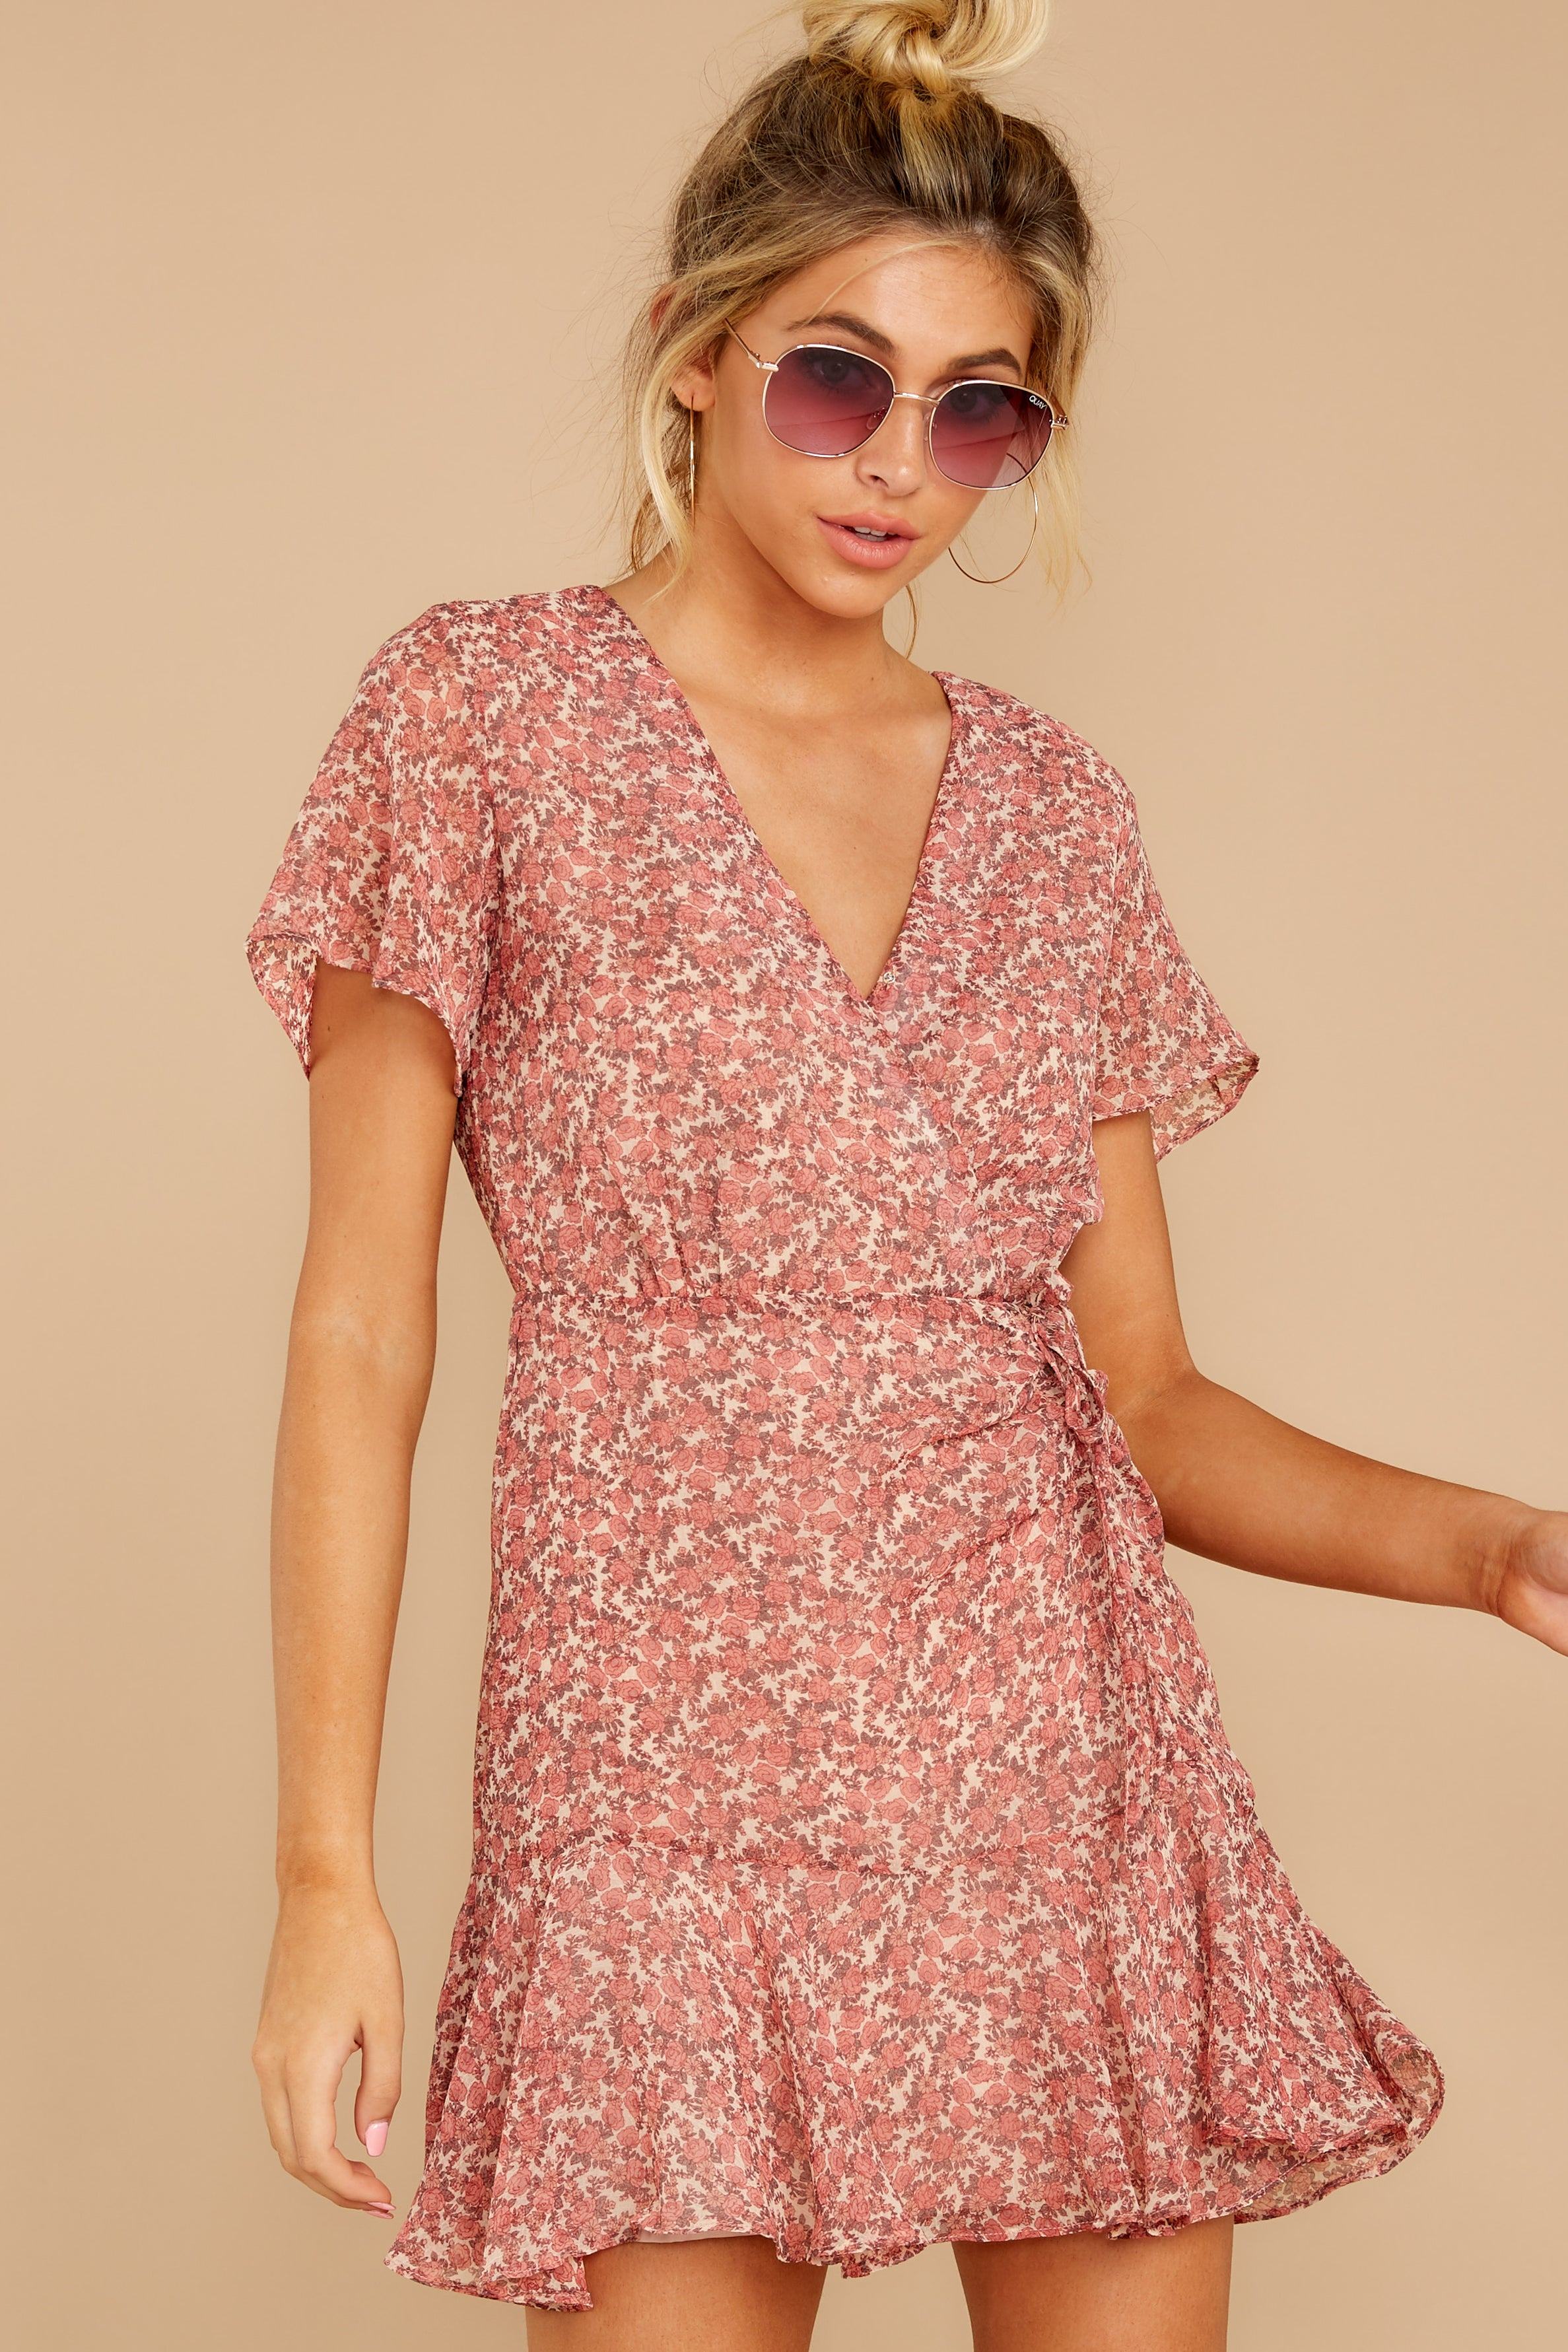 5 Garden Varieties Mauve Pink Floral Print Dress at reddressboutique.com